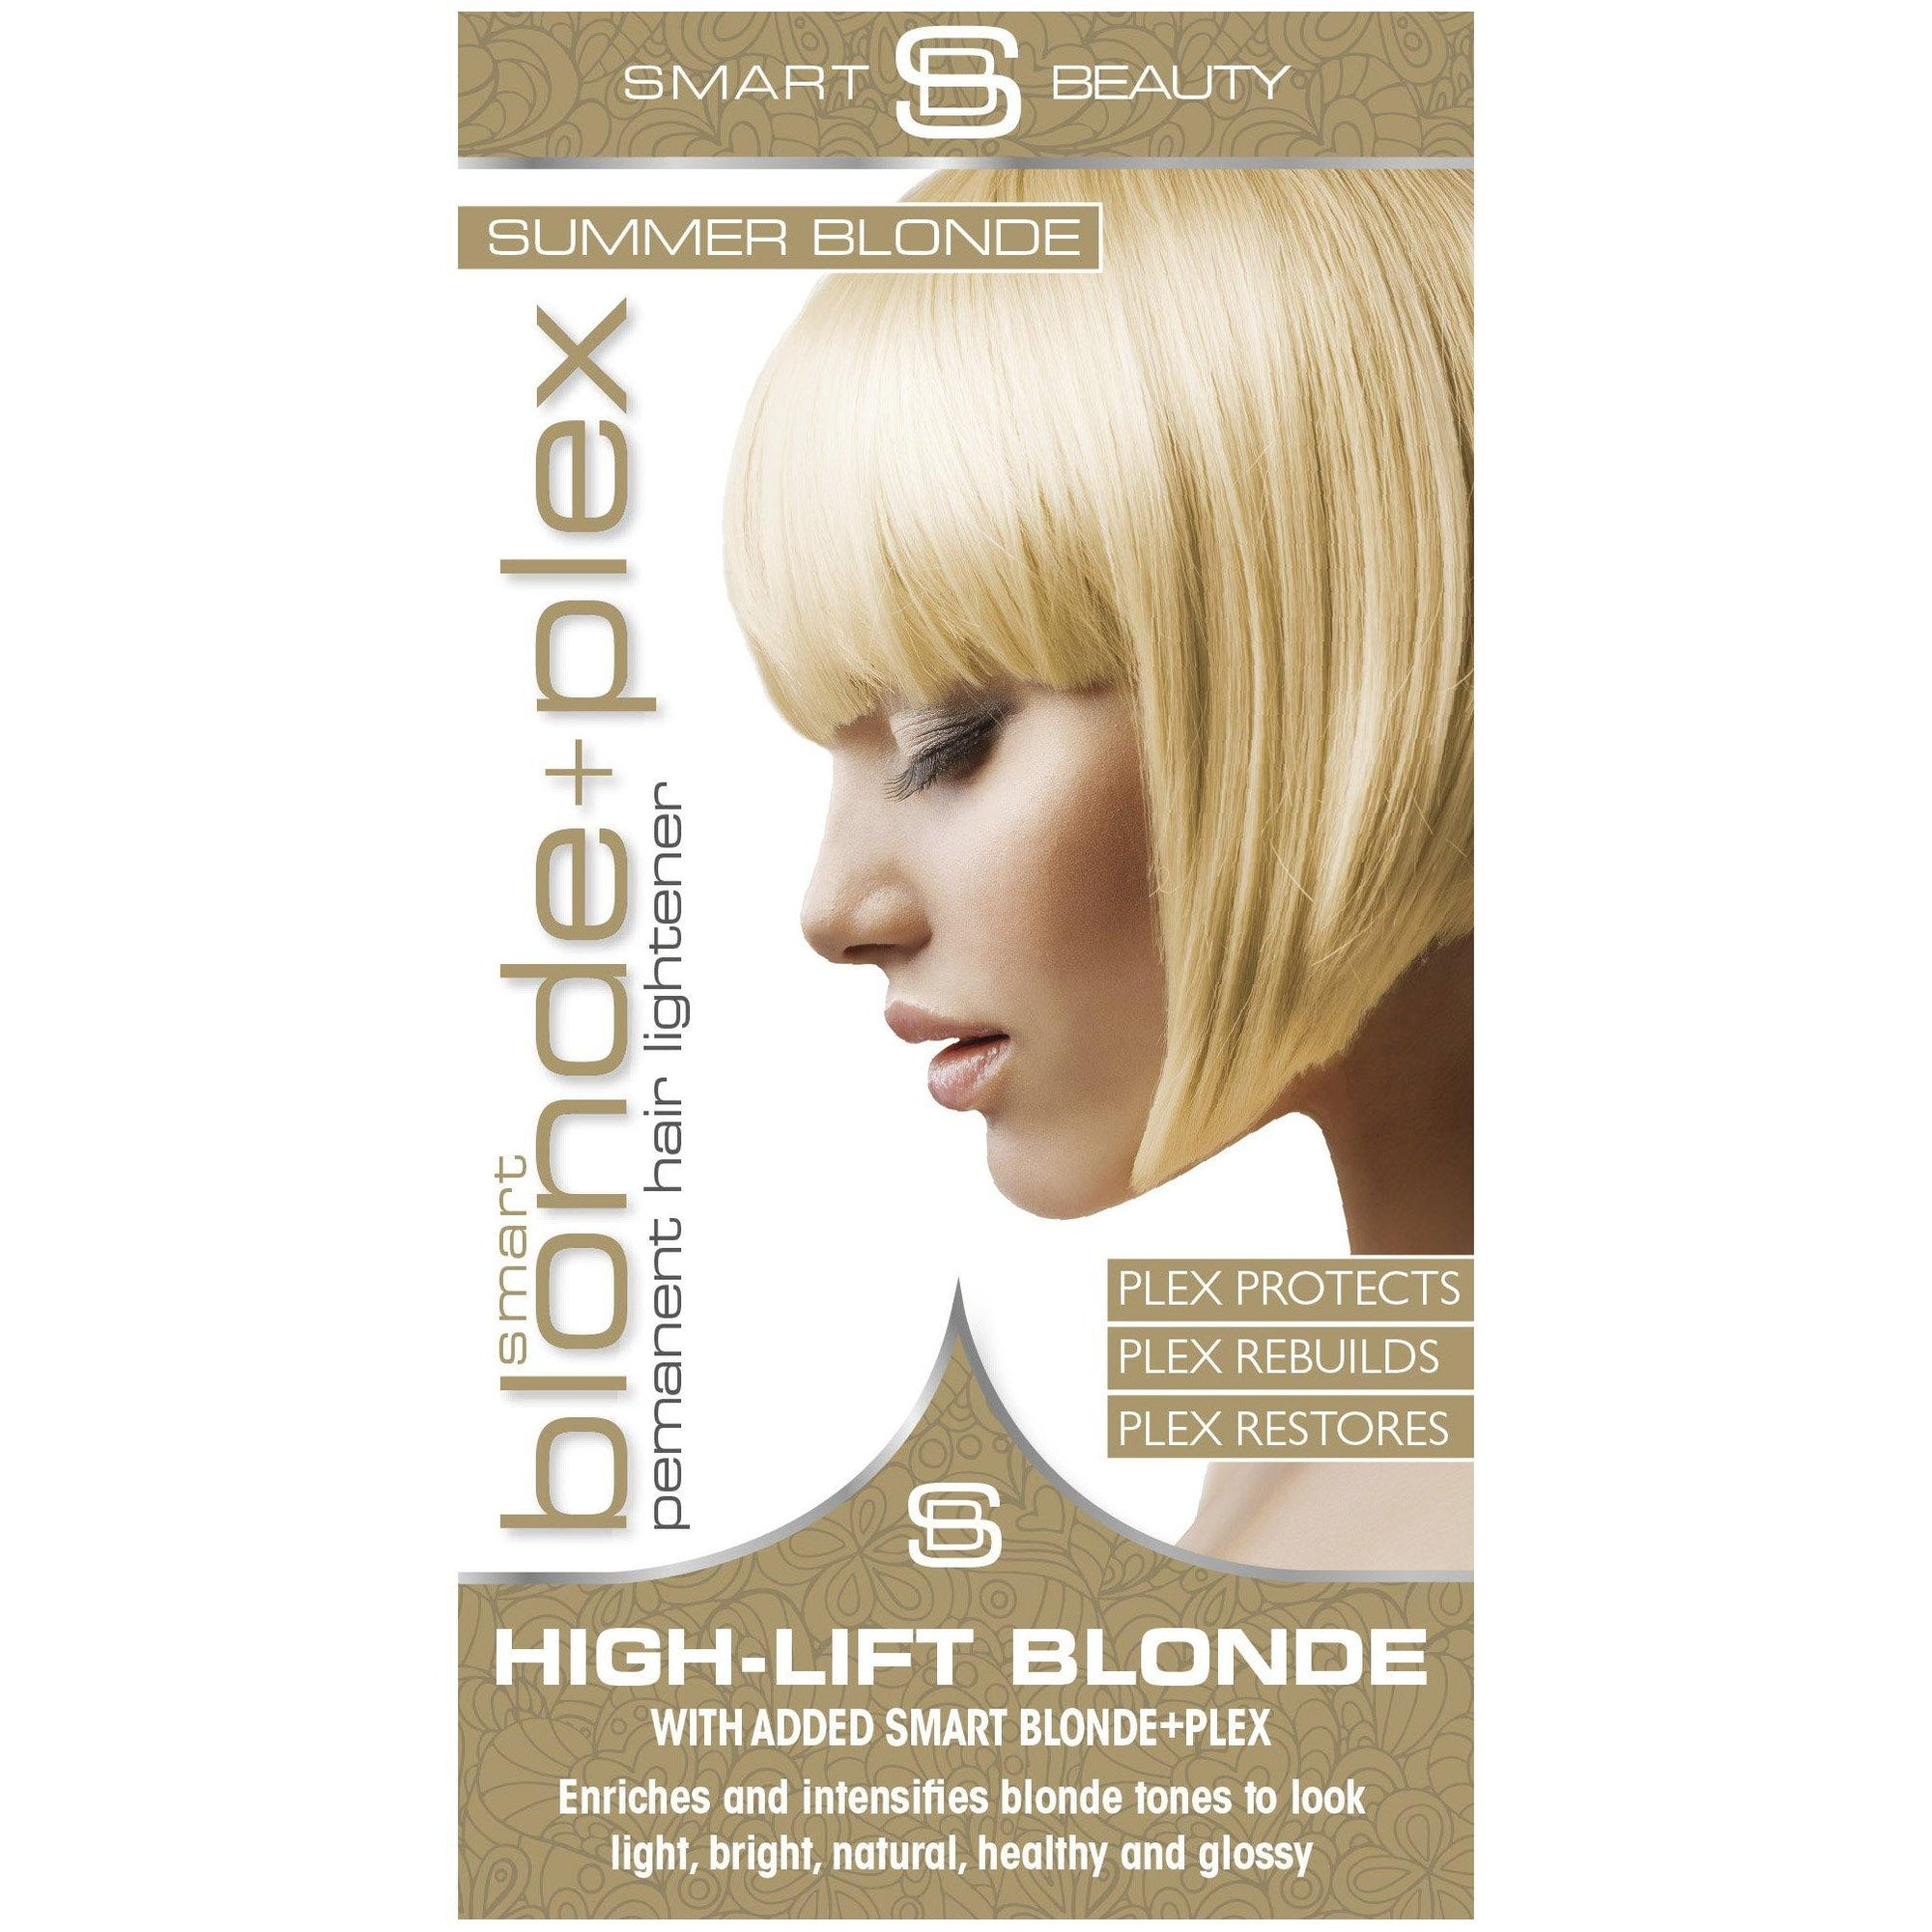 Summer Blonde Permanent Hair Dye with Smart Plex